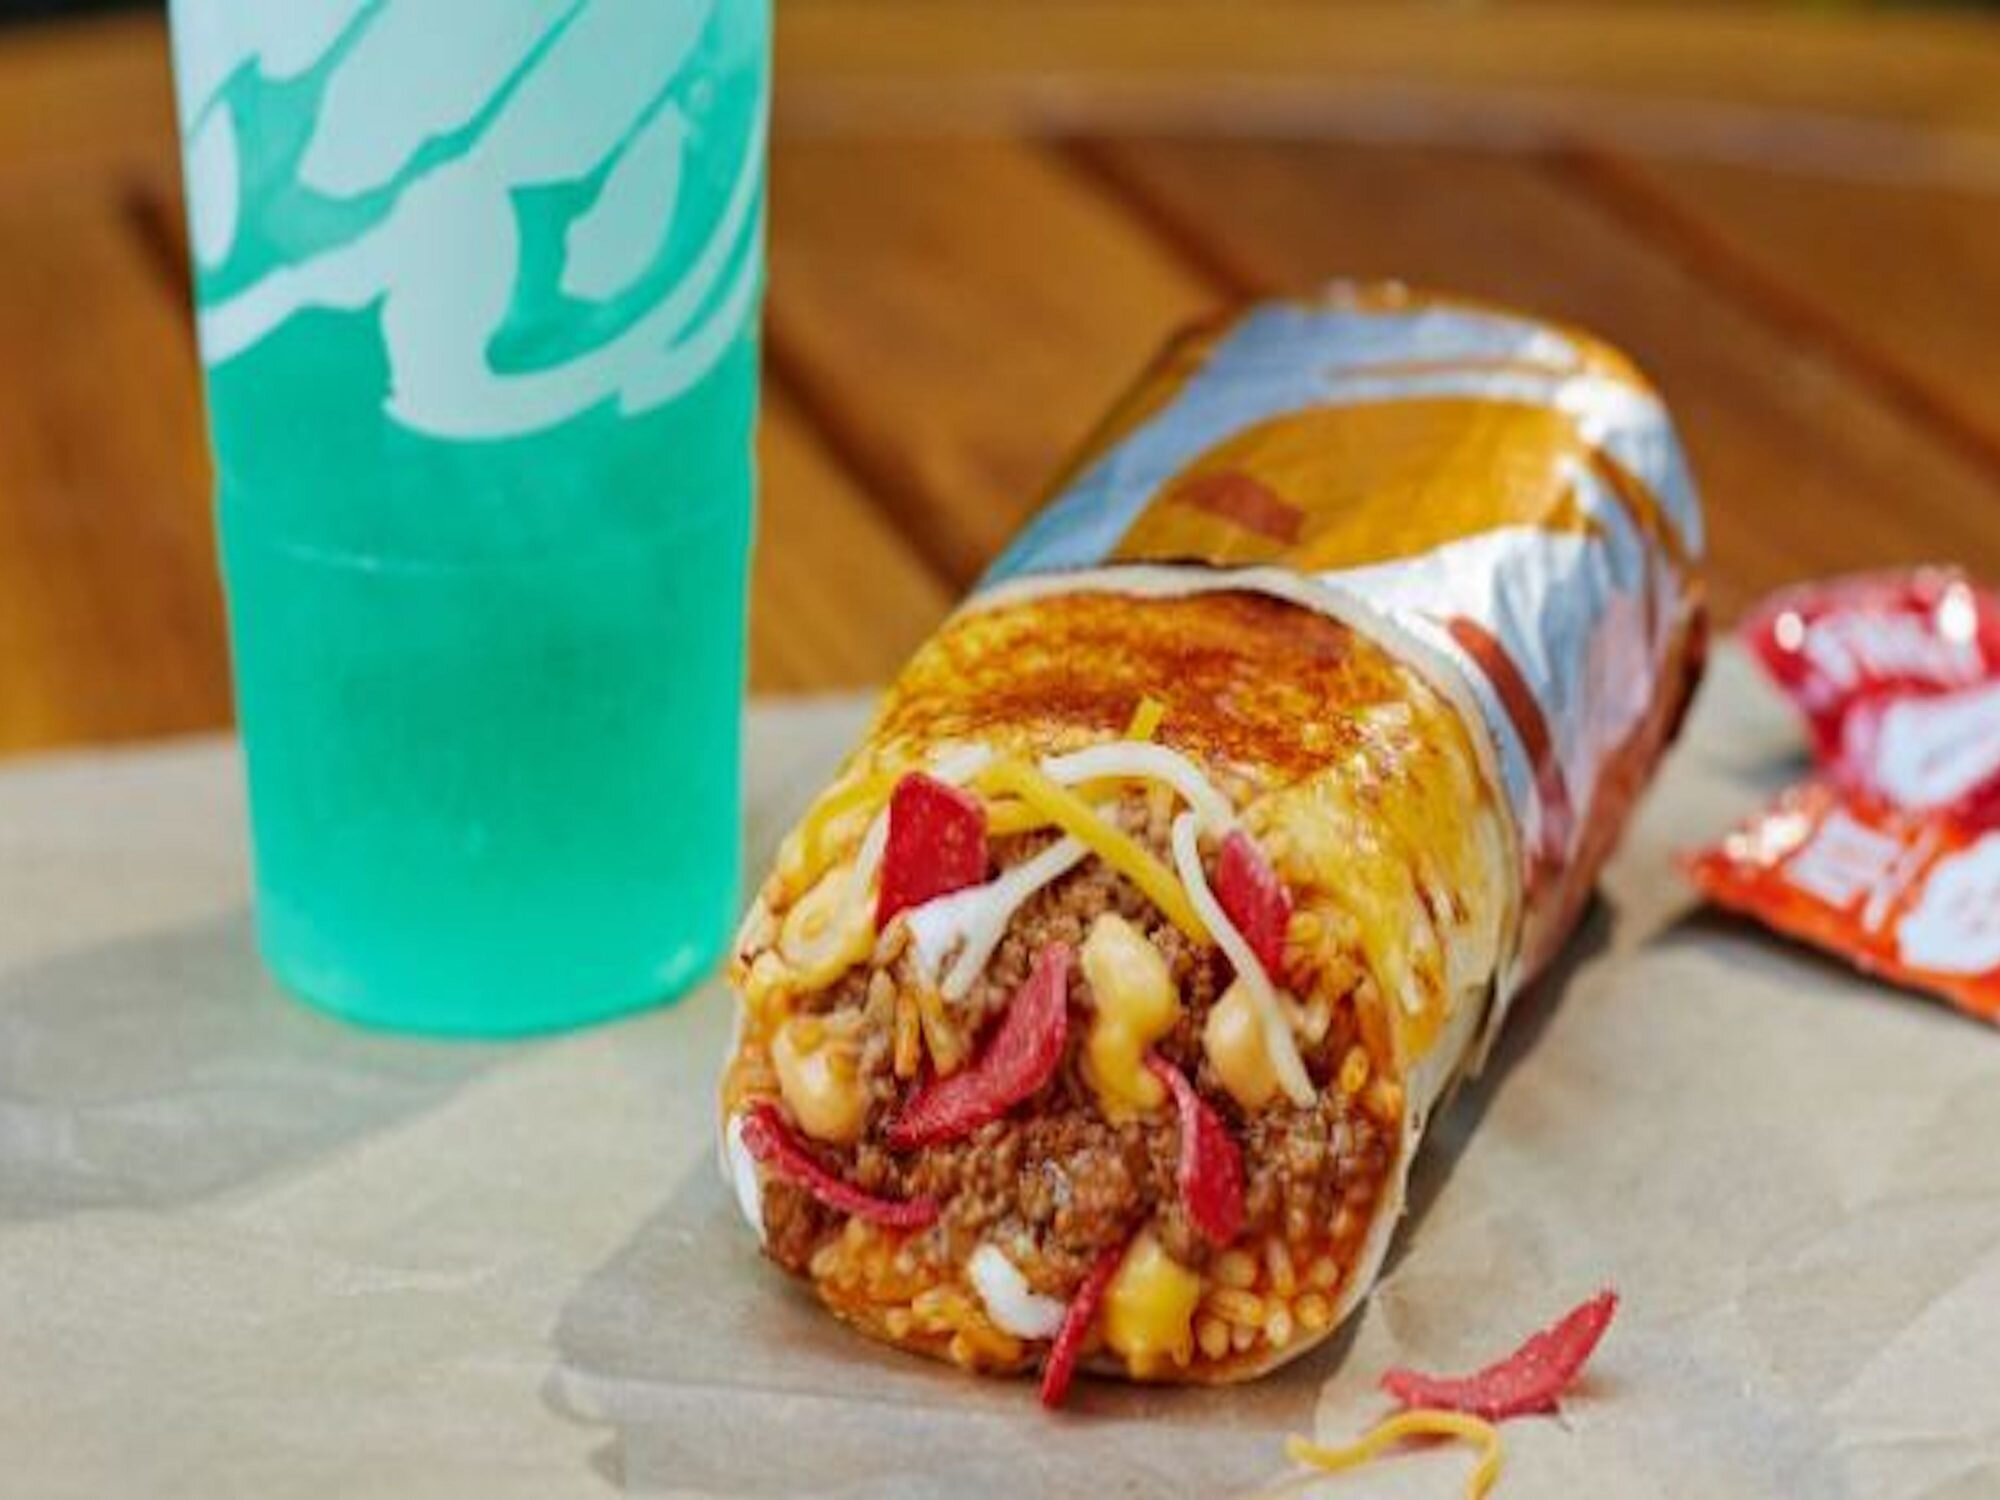 Taco Bell's New Grilled Cheese Burrito Is the Mashup We've Been Waiting For